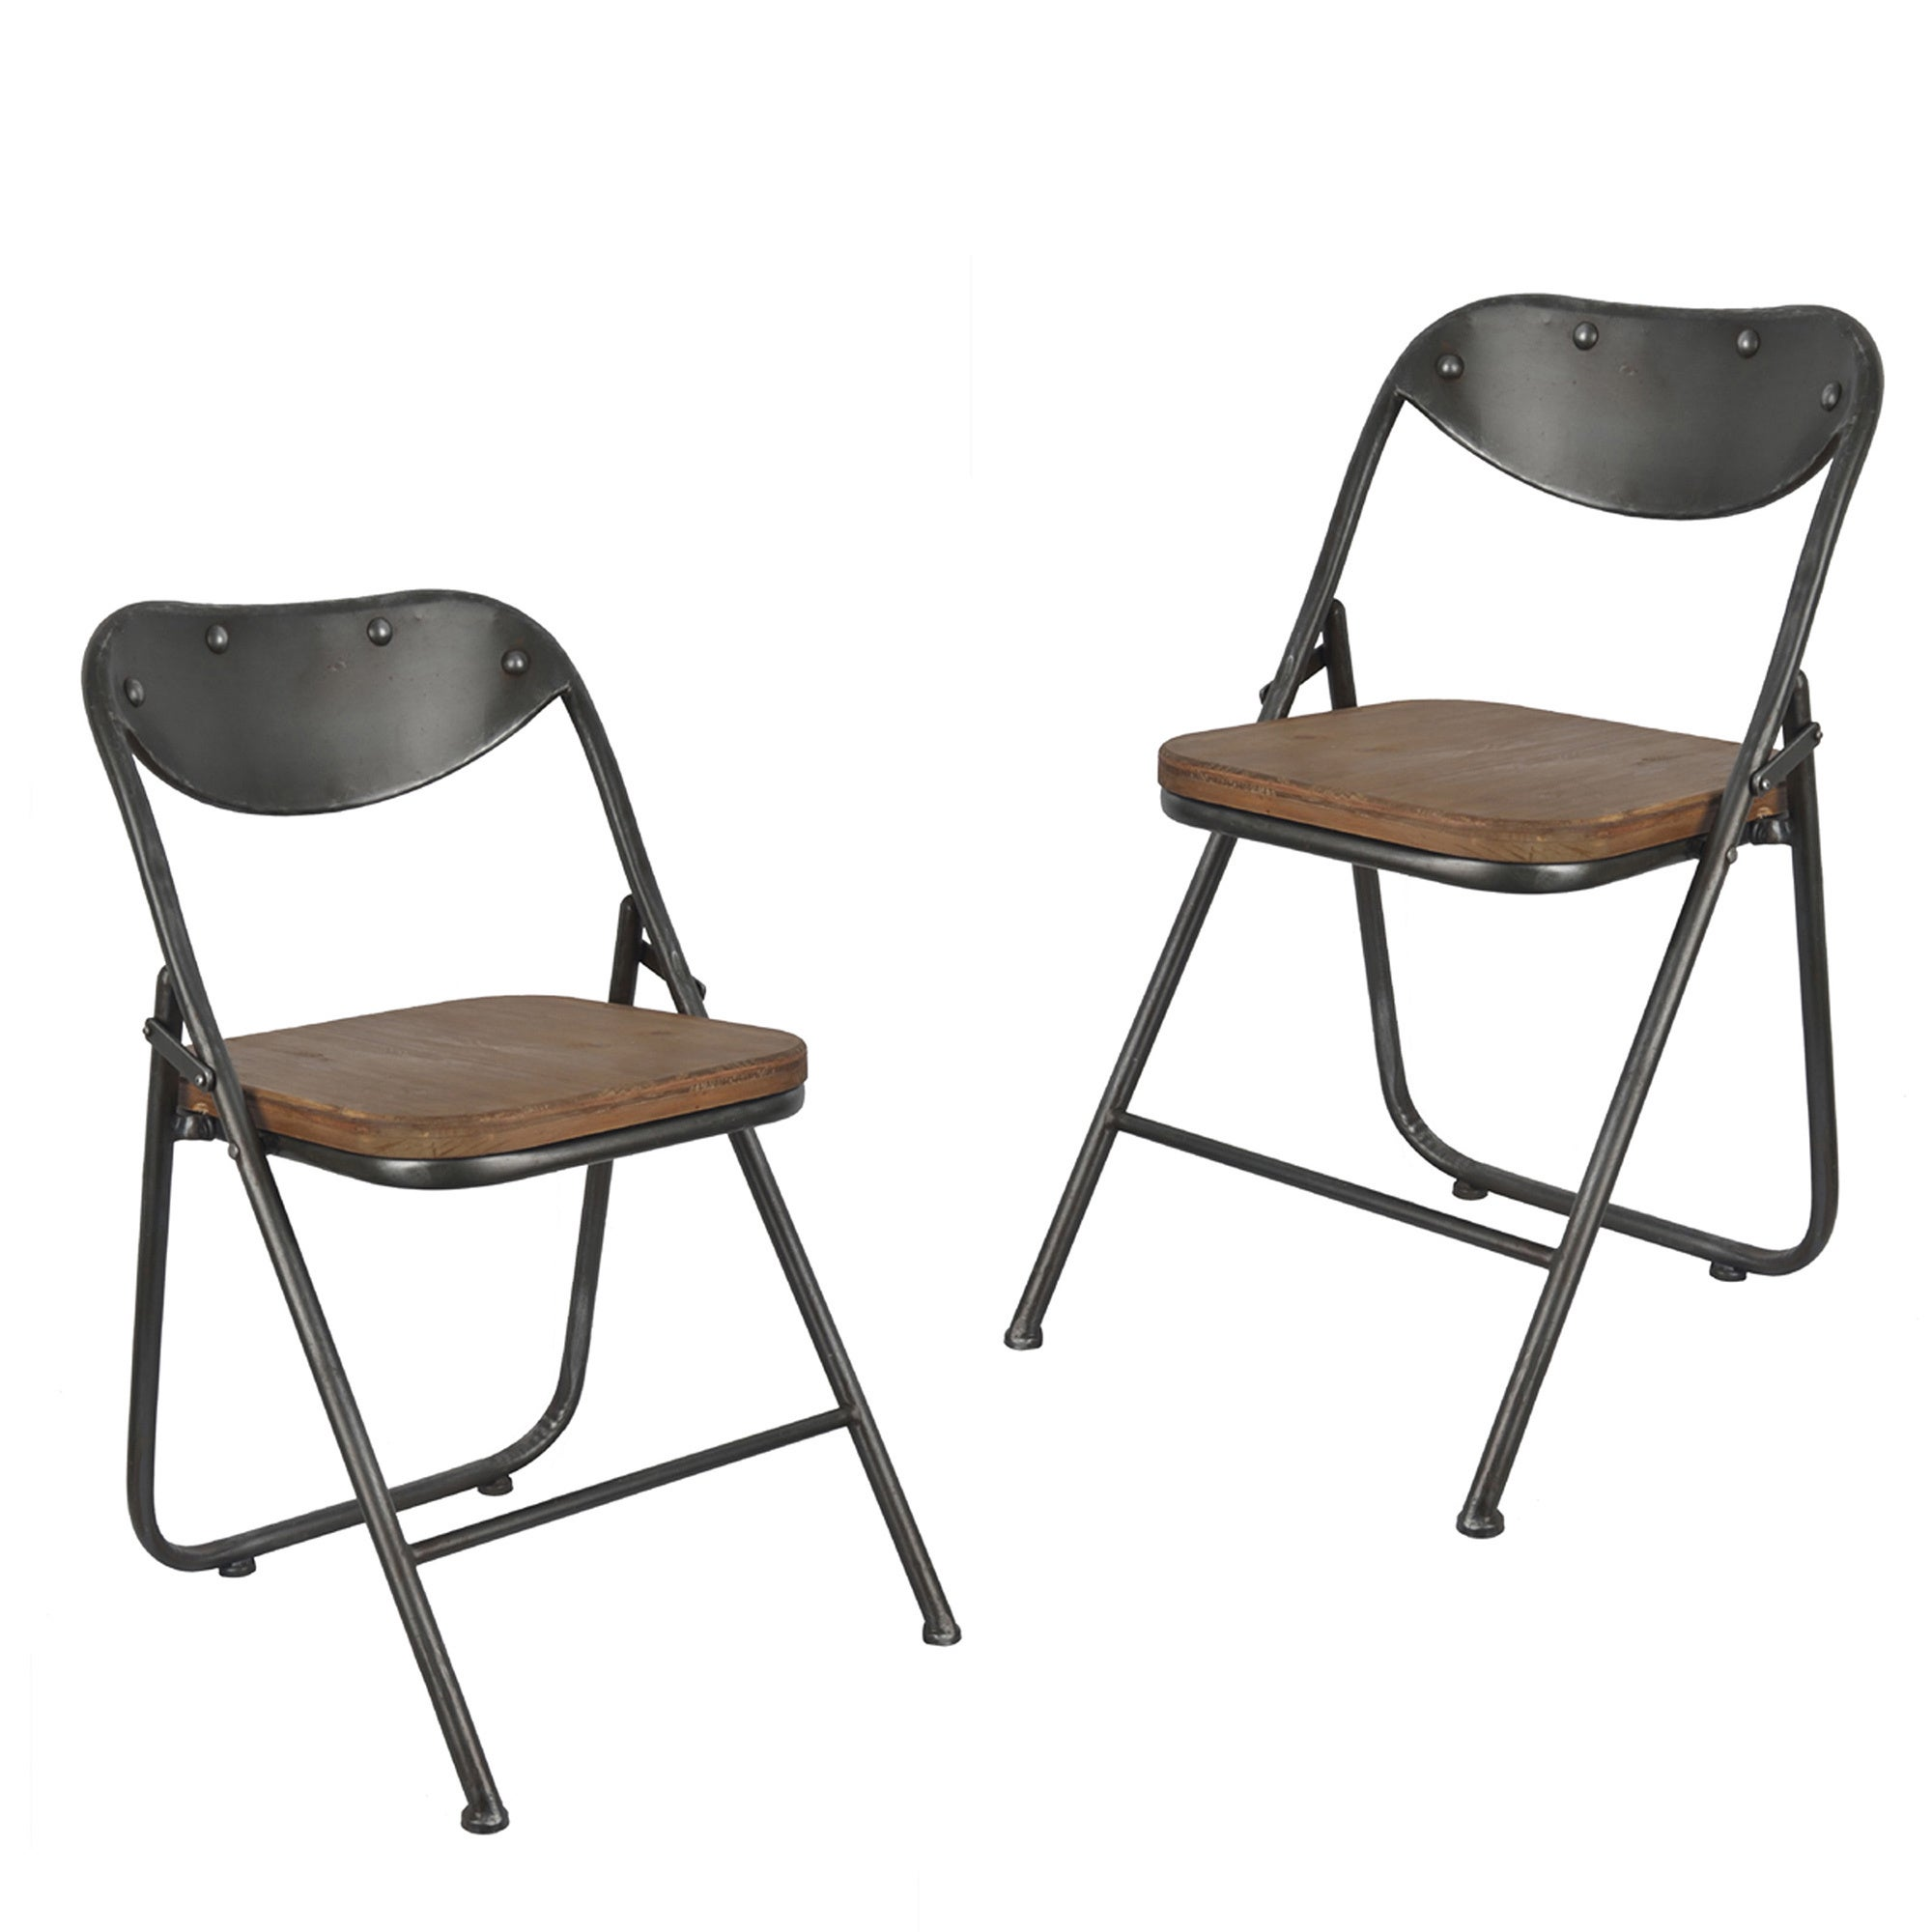 Decor Therapy Vintage Wood Seat Folding Chairs Set Of 2